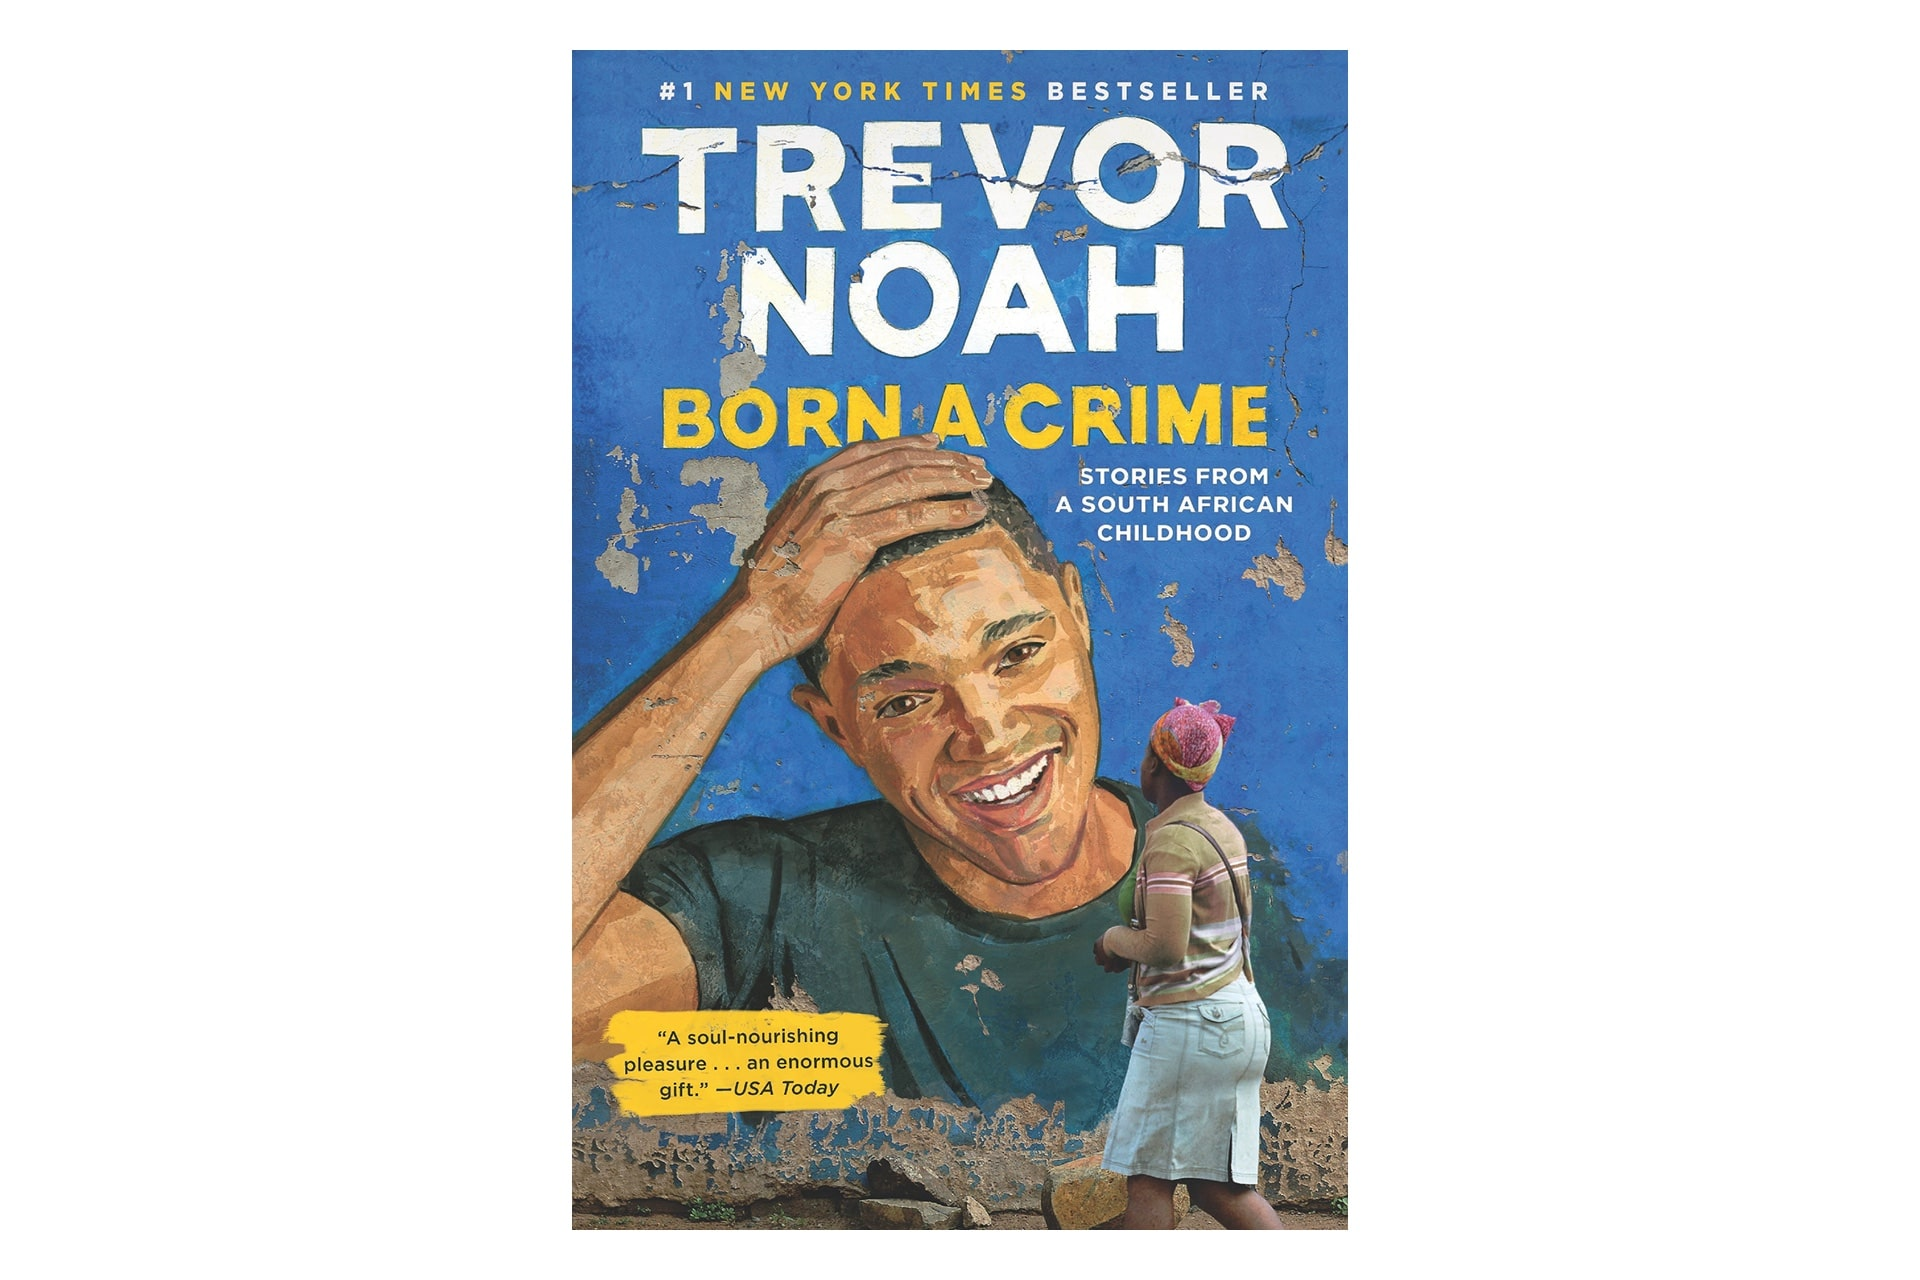 Book cover by Trevor Noah that says